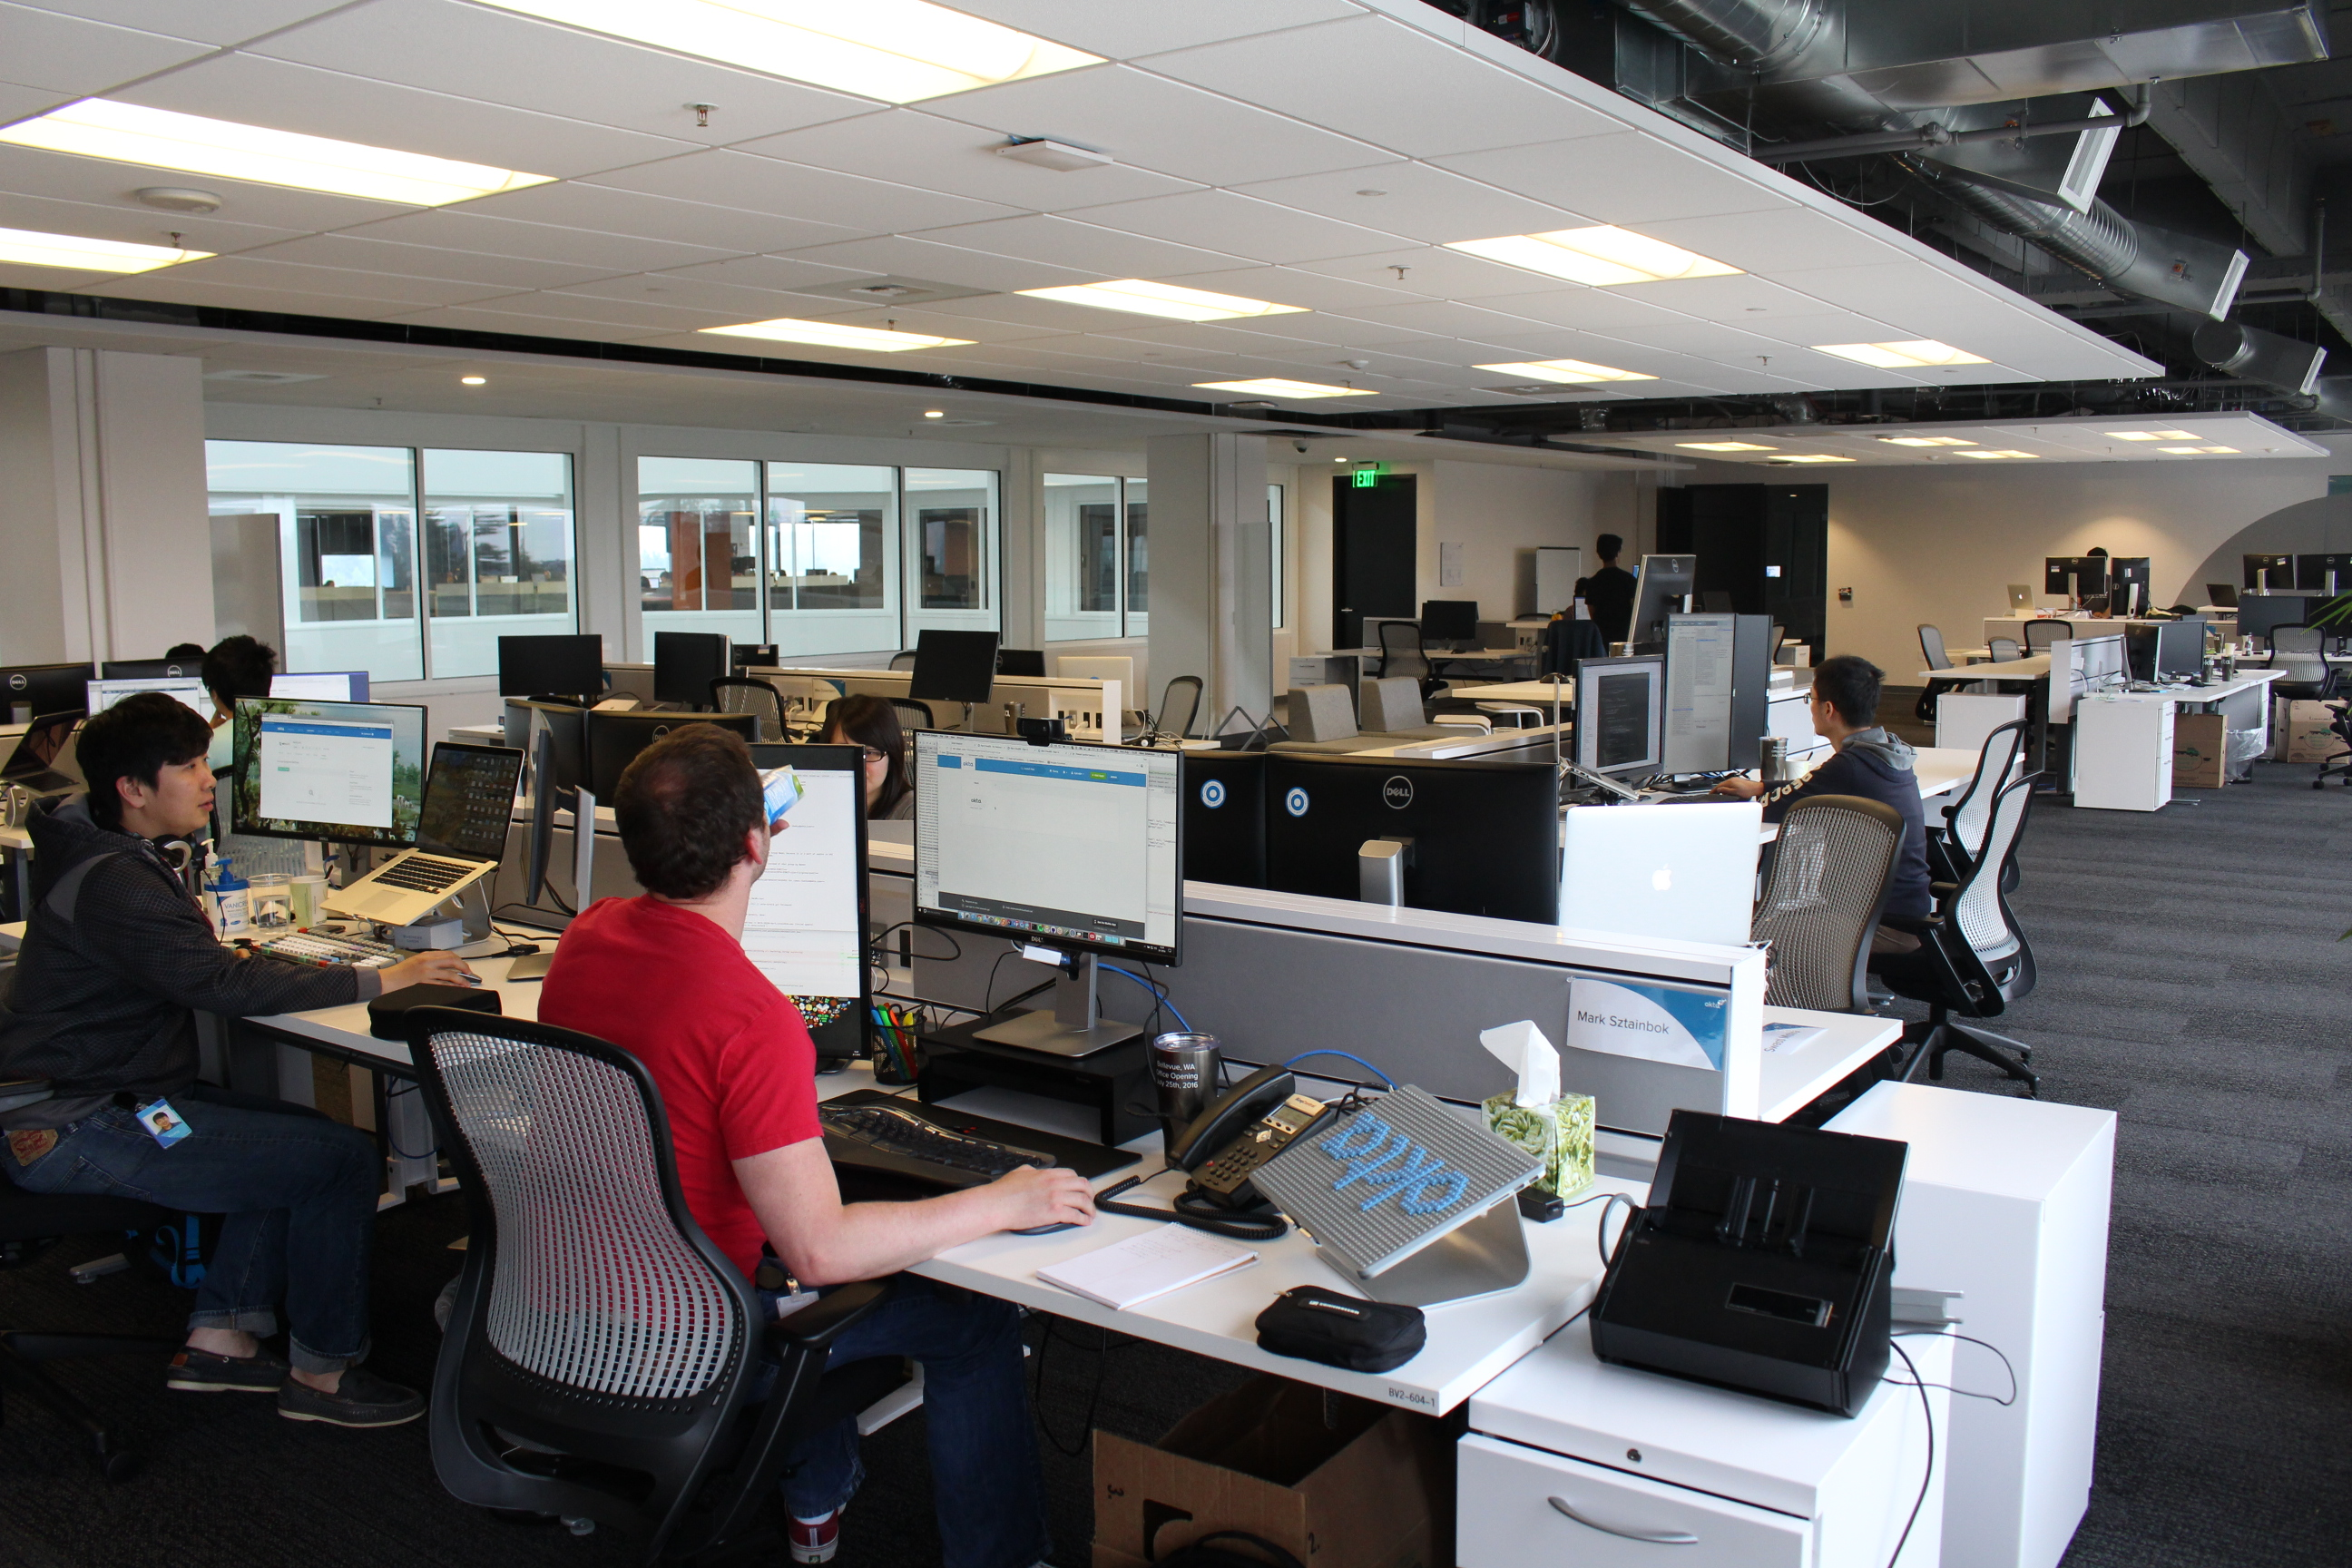 Okta enterprise id company sets up seattle area office - Interior design jobs washington state ...